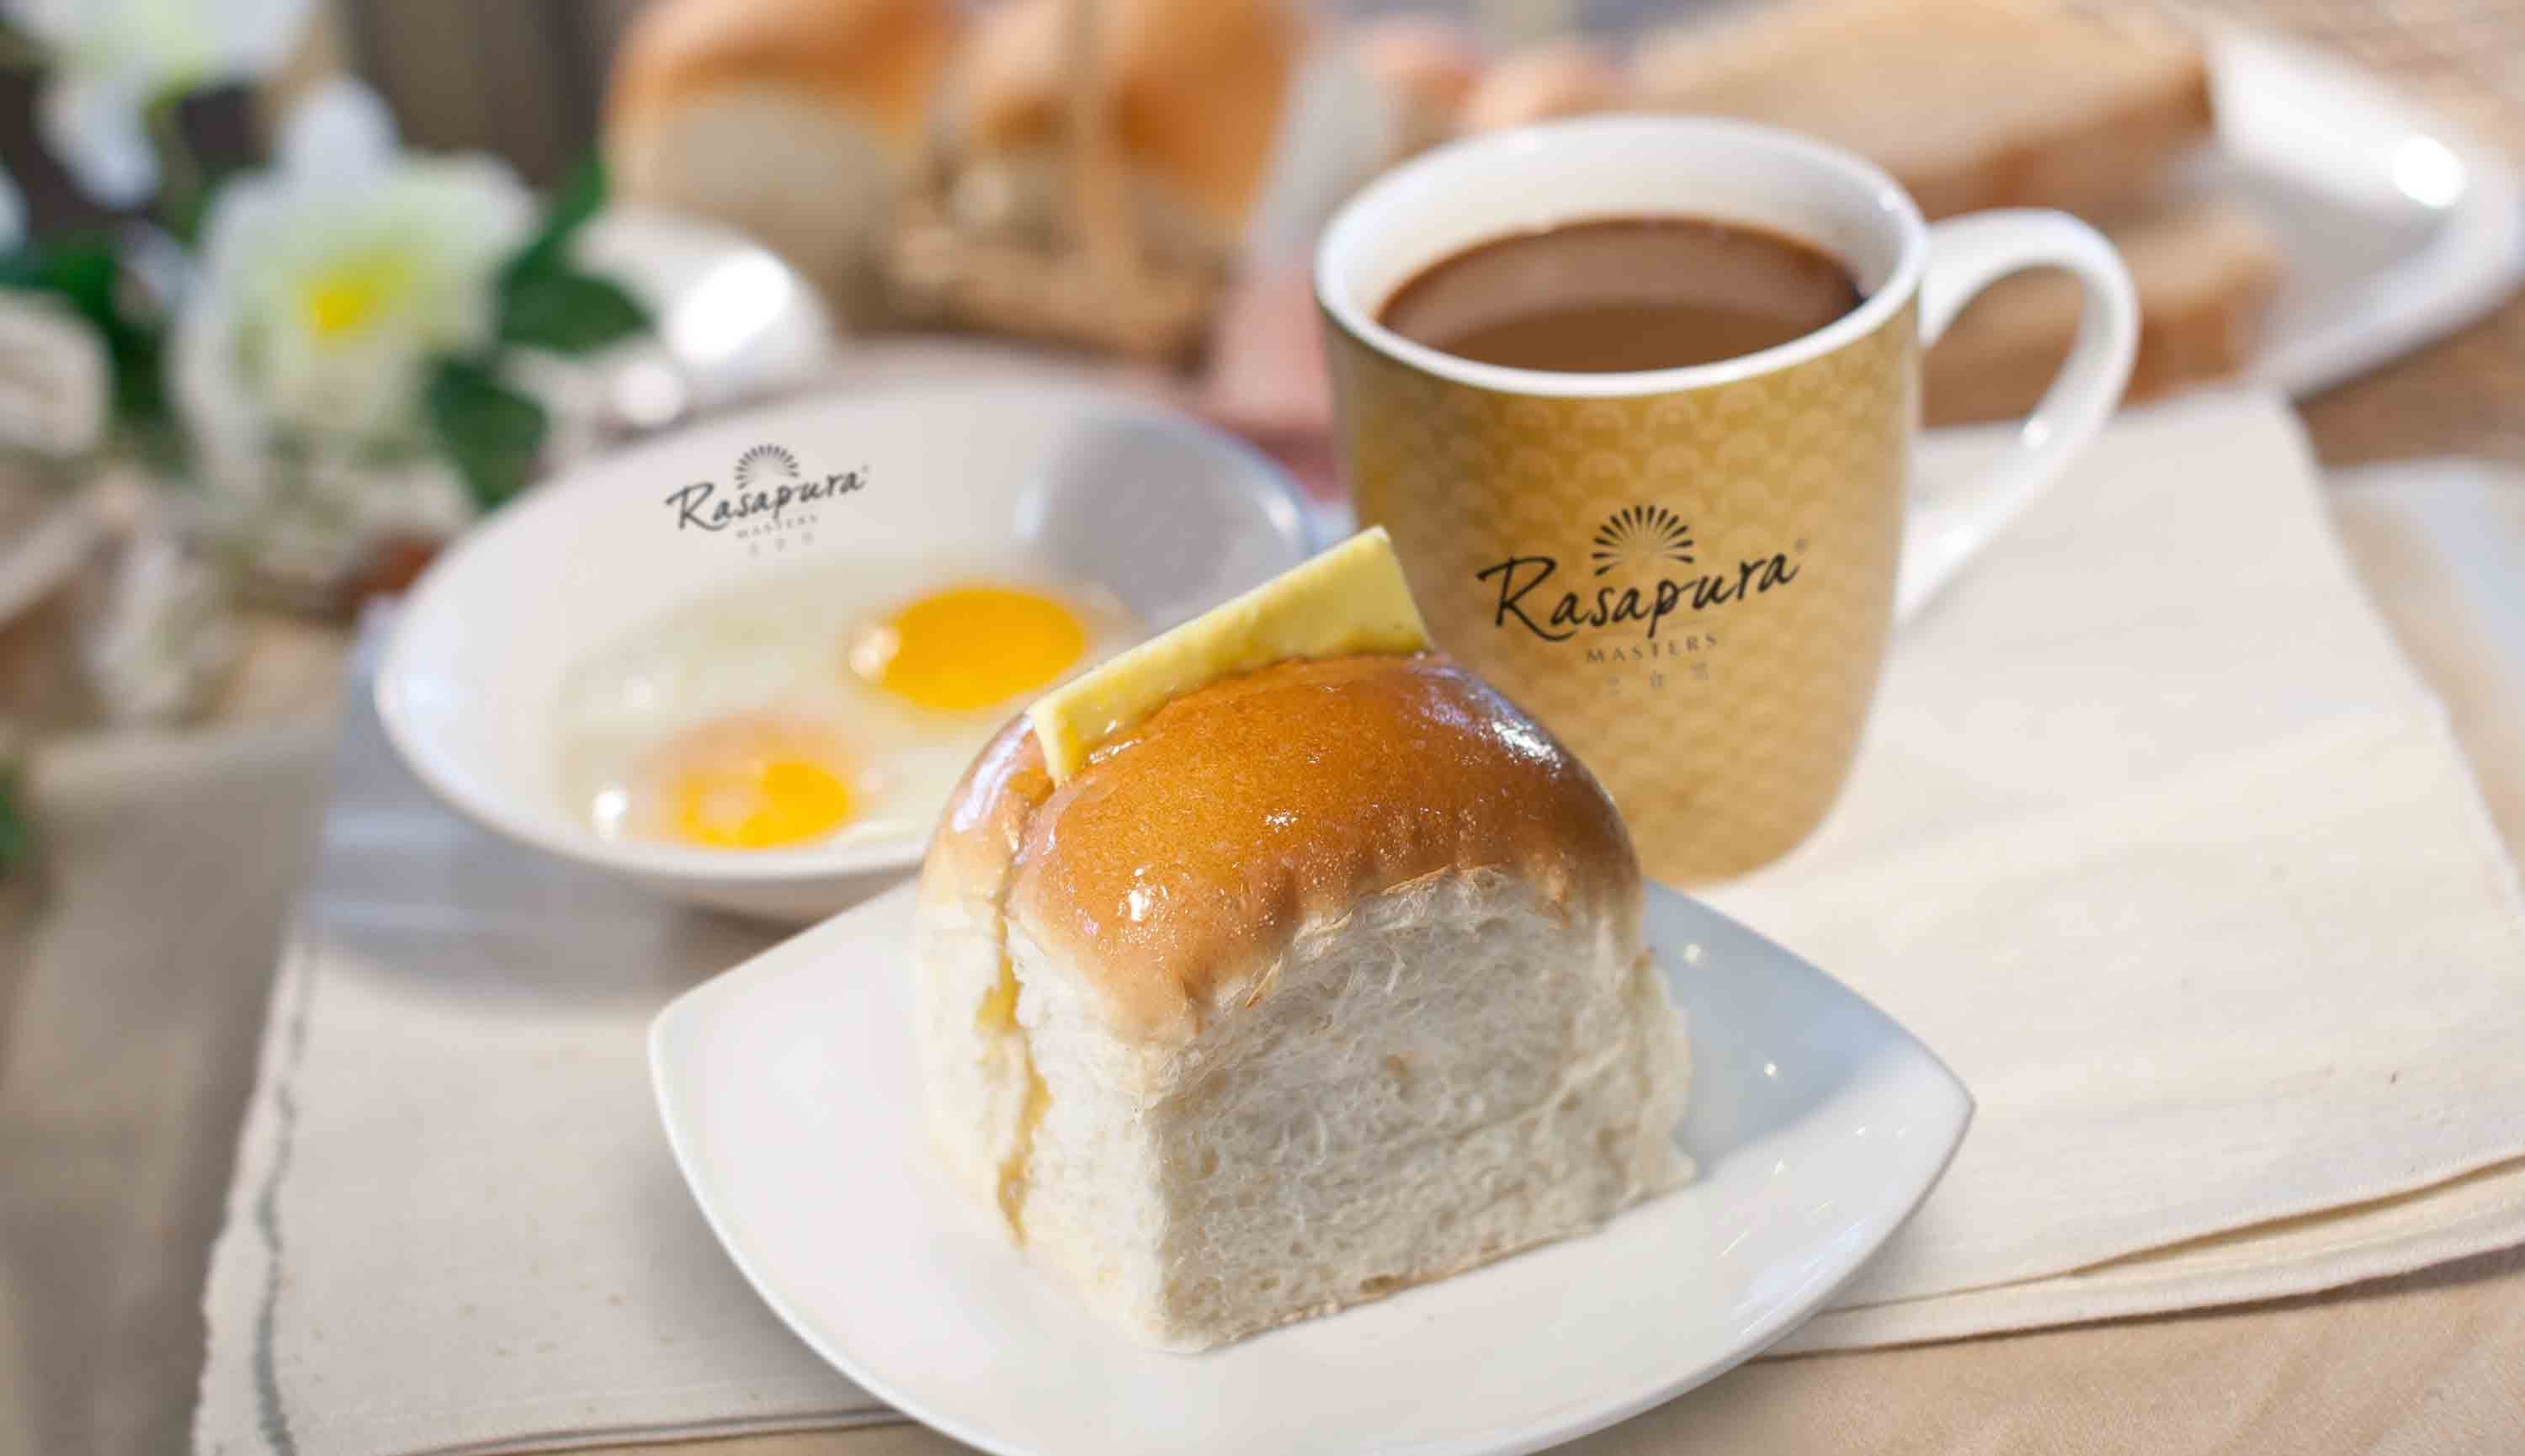 Rasapura Kaya Butter Bread and Coffee